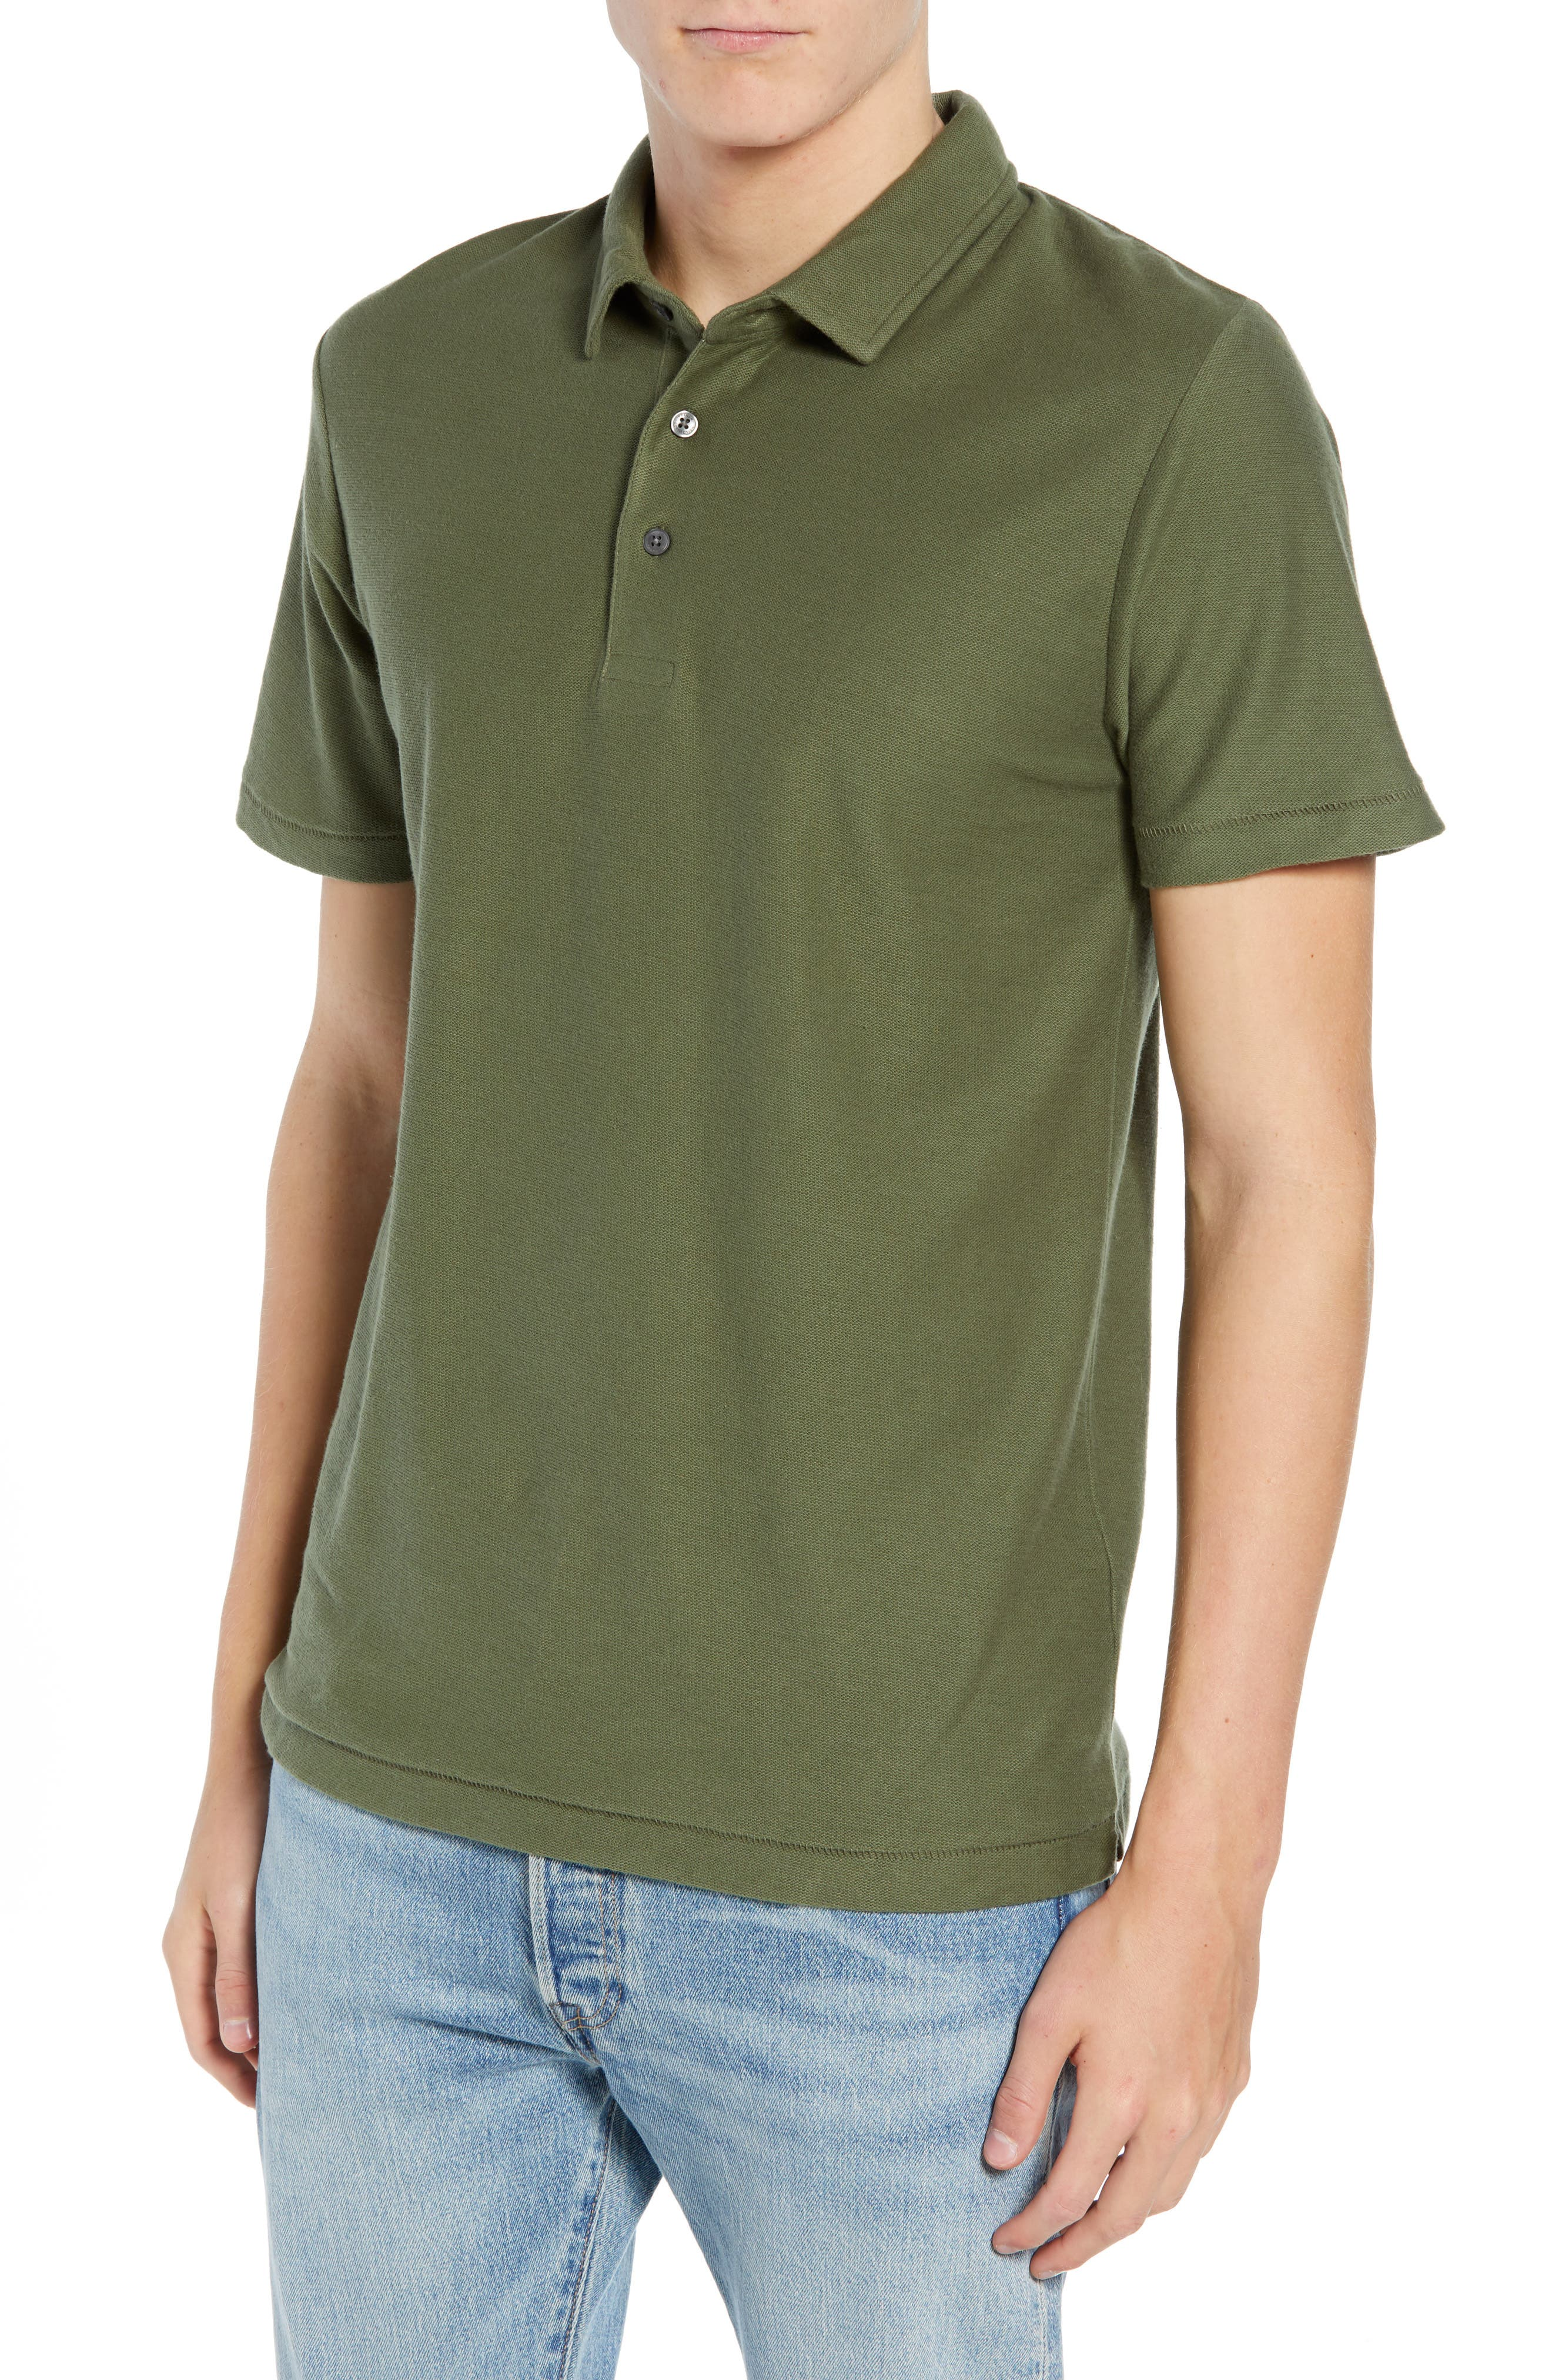 FRENCH CONNECTION Solid Polo, Main, color, 301